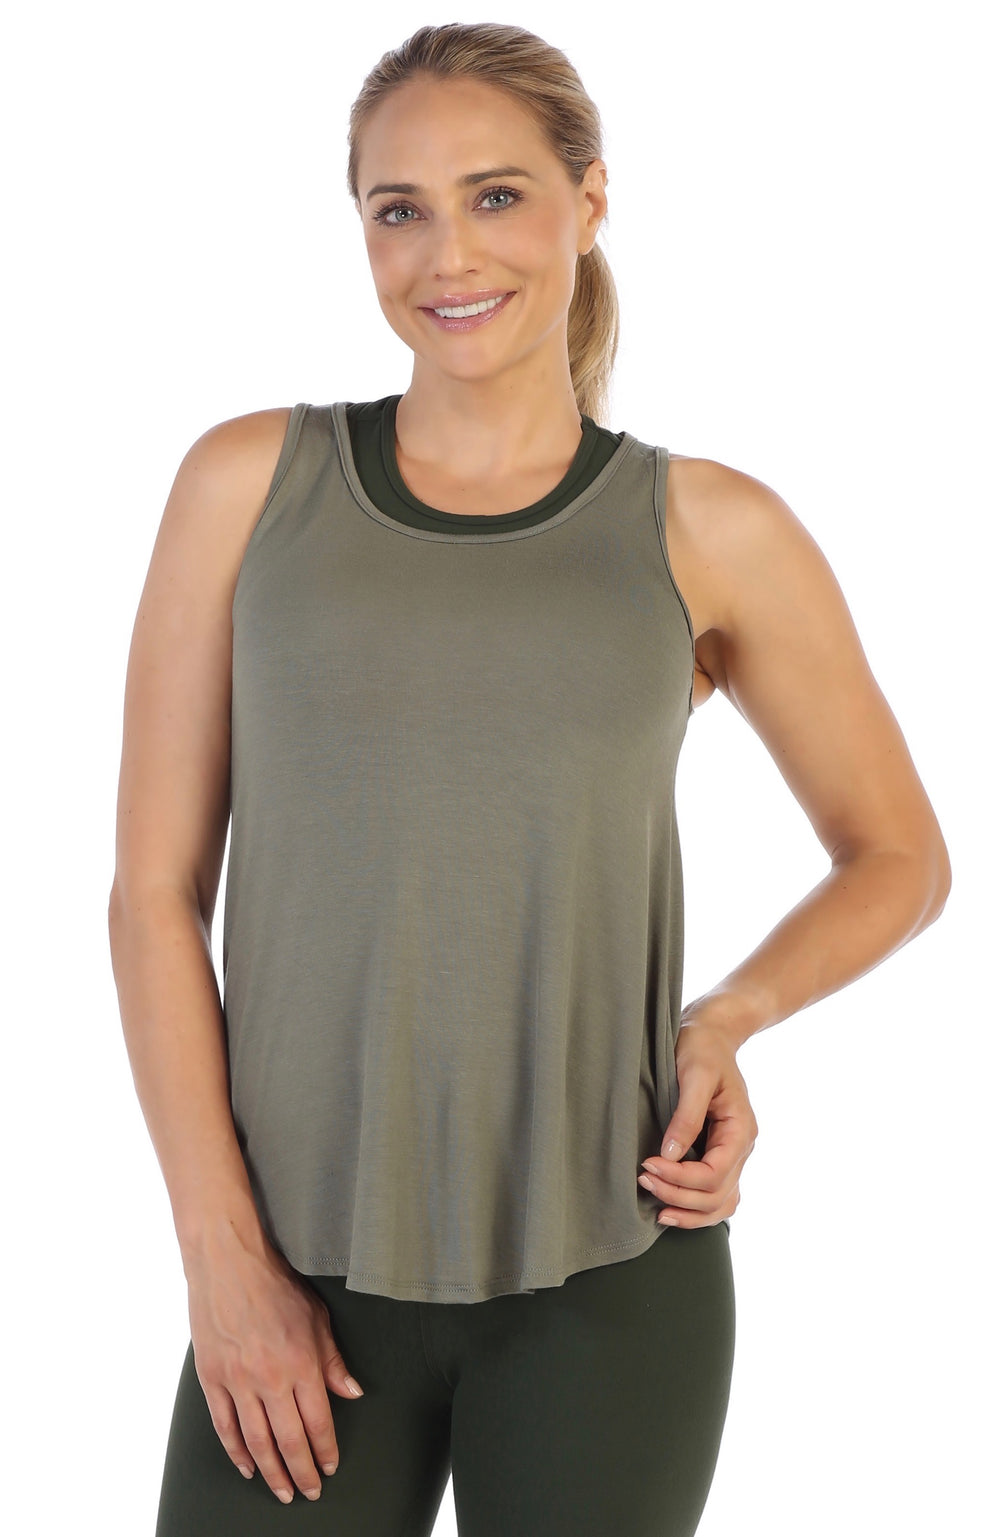 Olive-Get Shredded-Workout Tank Top-Front Flowy